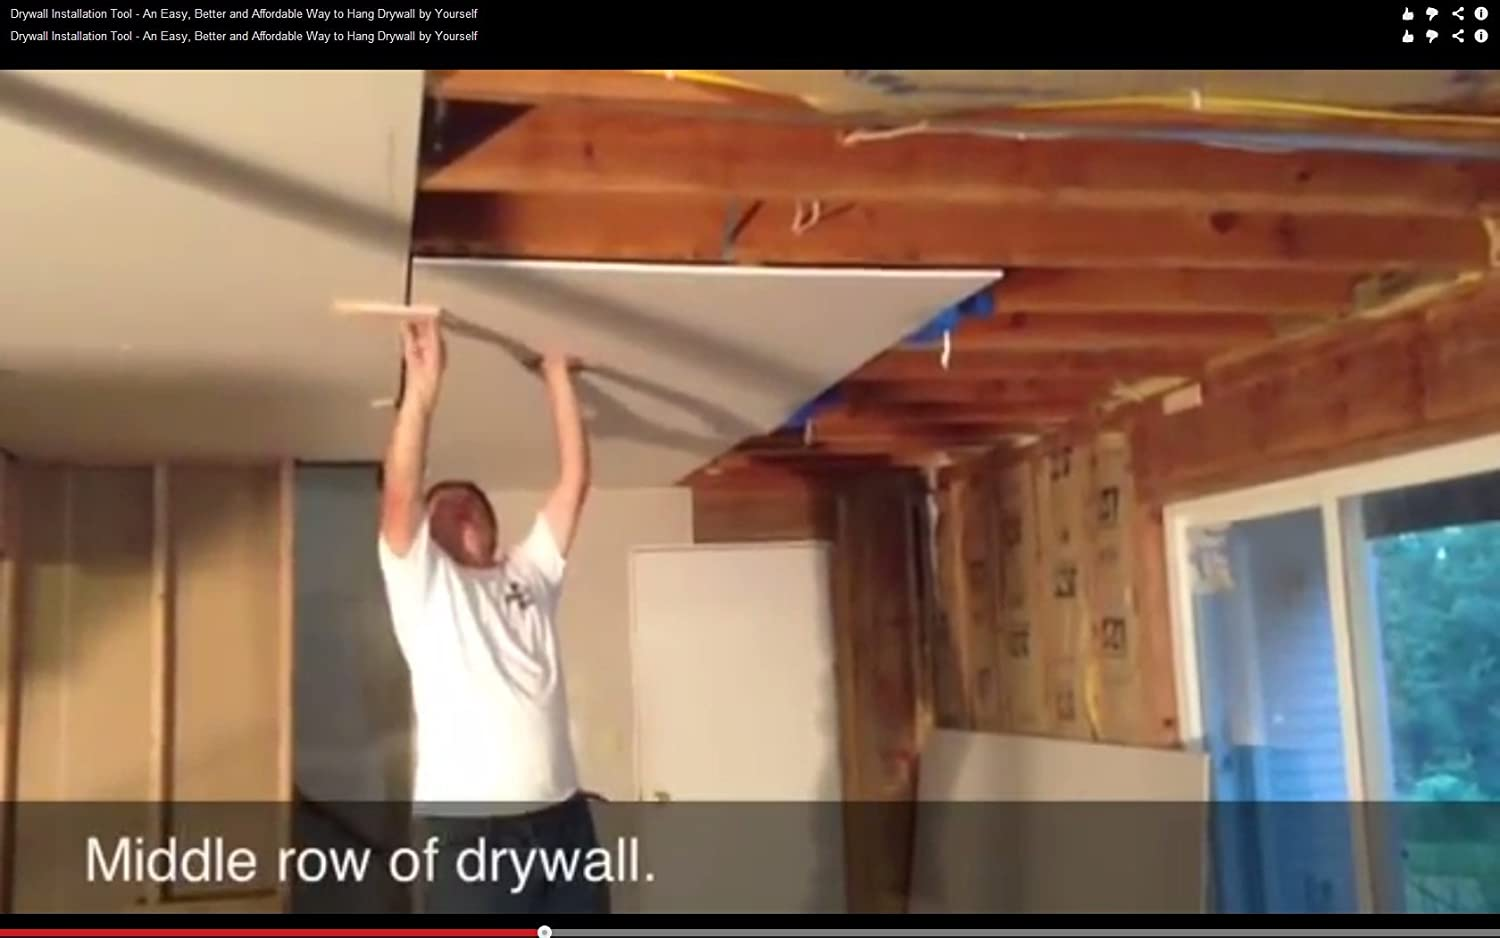 How to hang drywall on walls - How To Hang Drywall On Walls 45